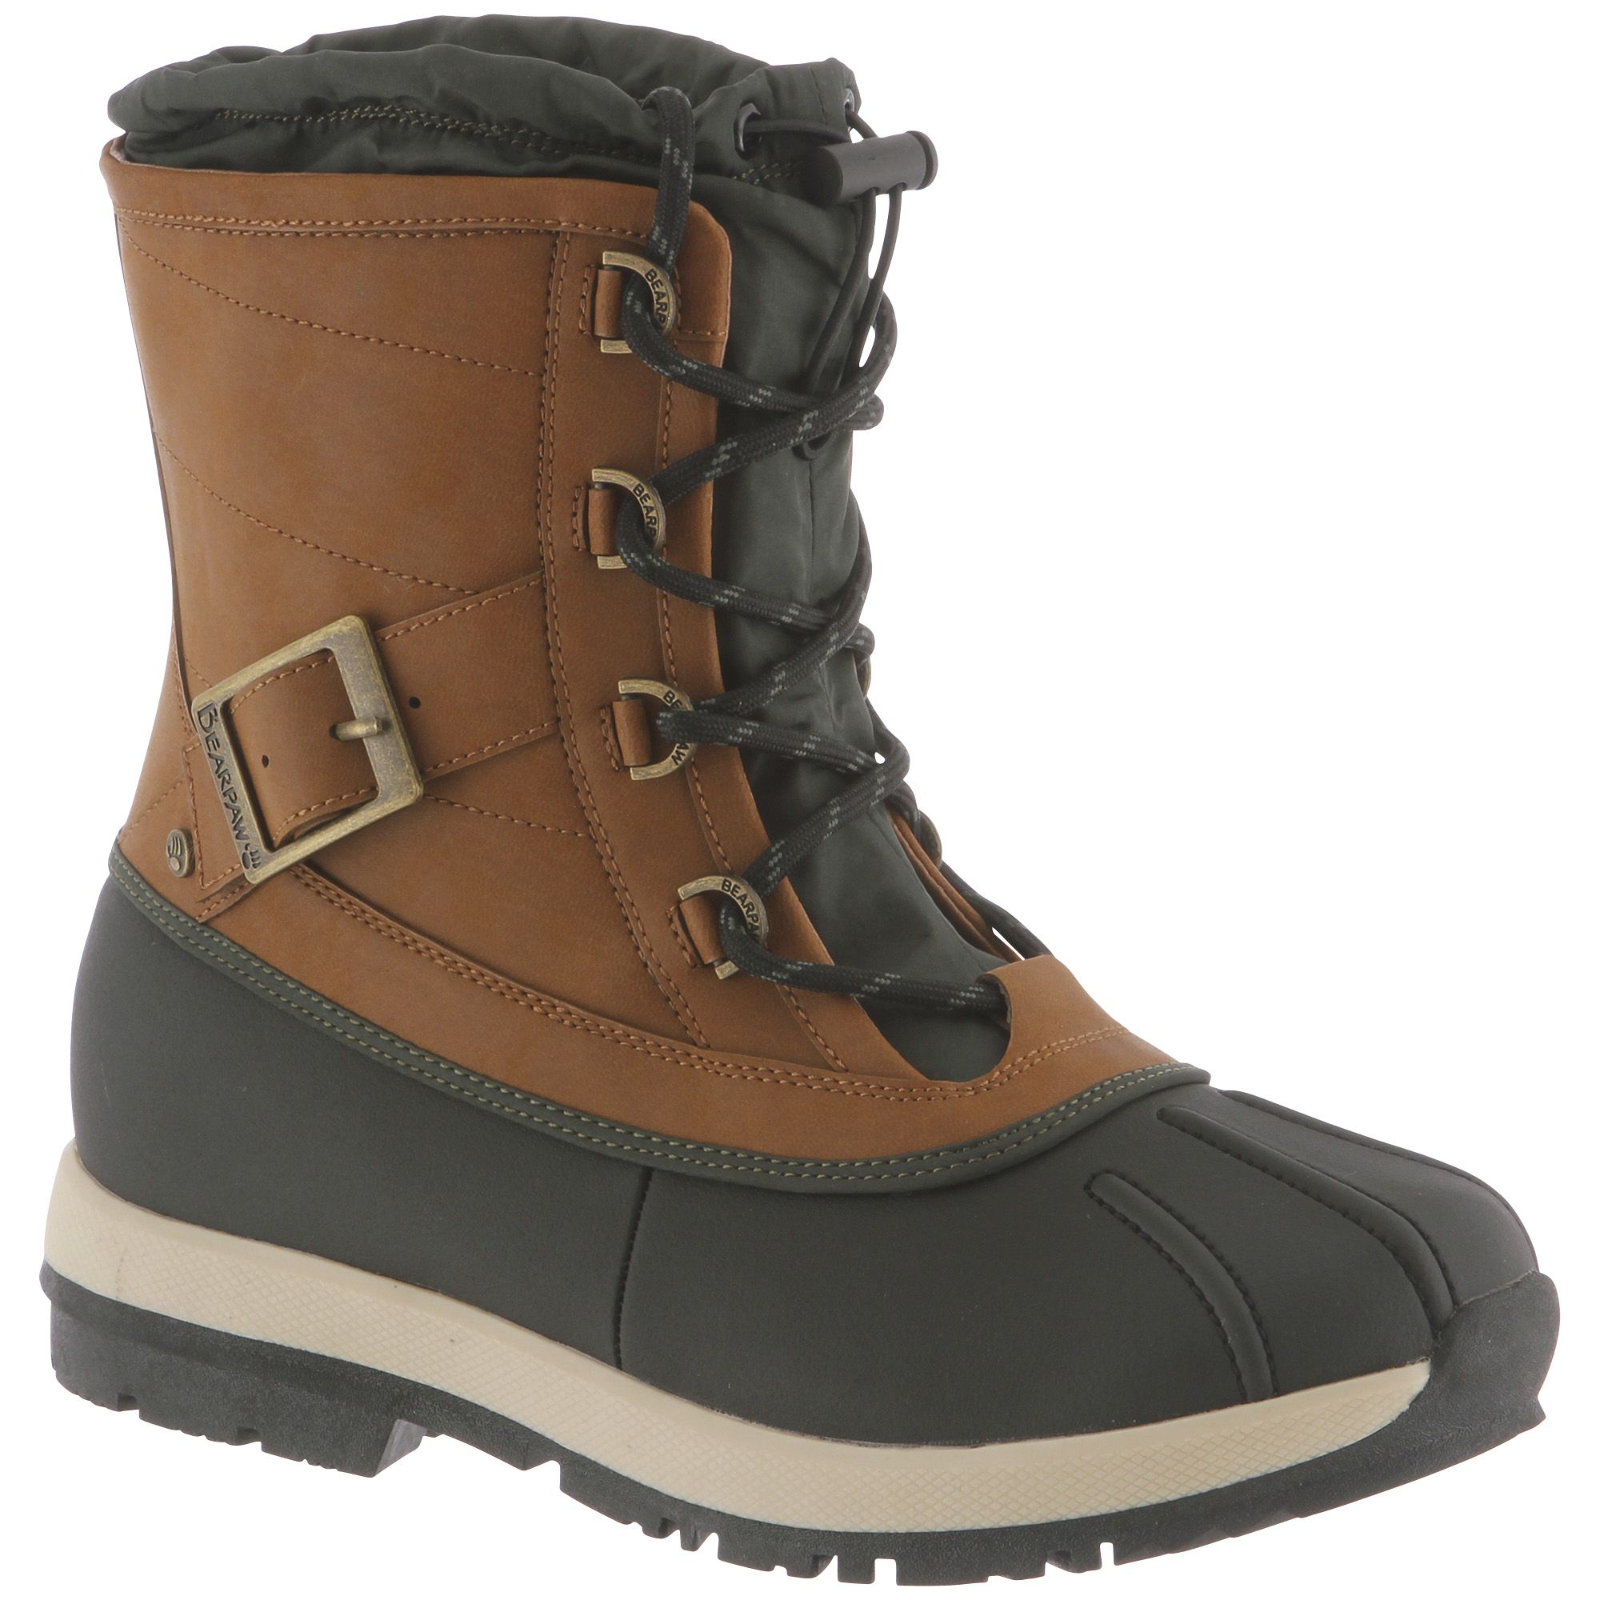 Women's Bearpaw Nelly Nelly Nelly Waterproof Boot Hickory Size 6  UT467-1086 0004af